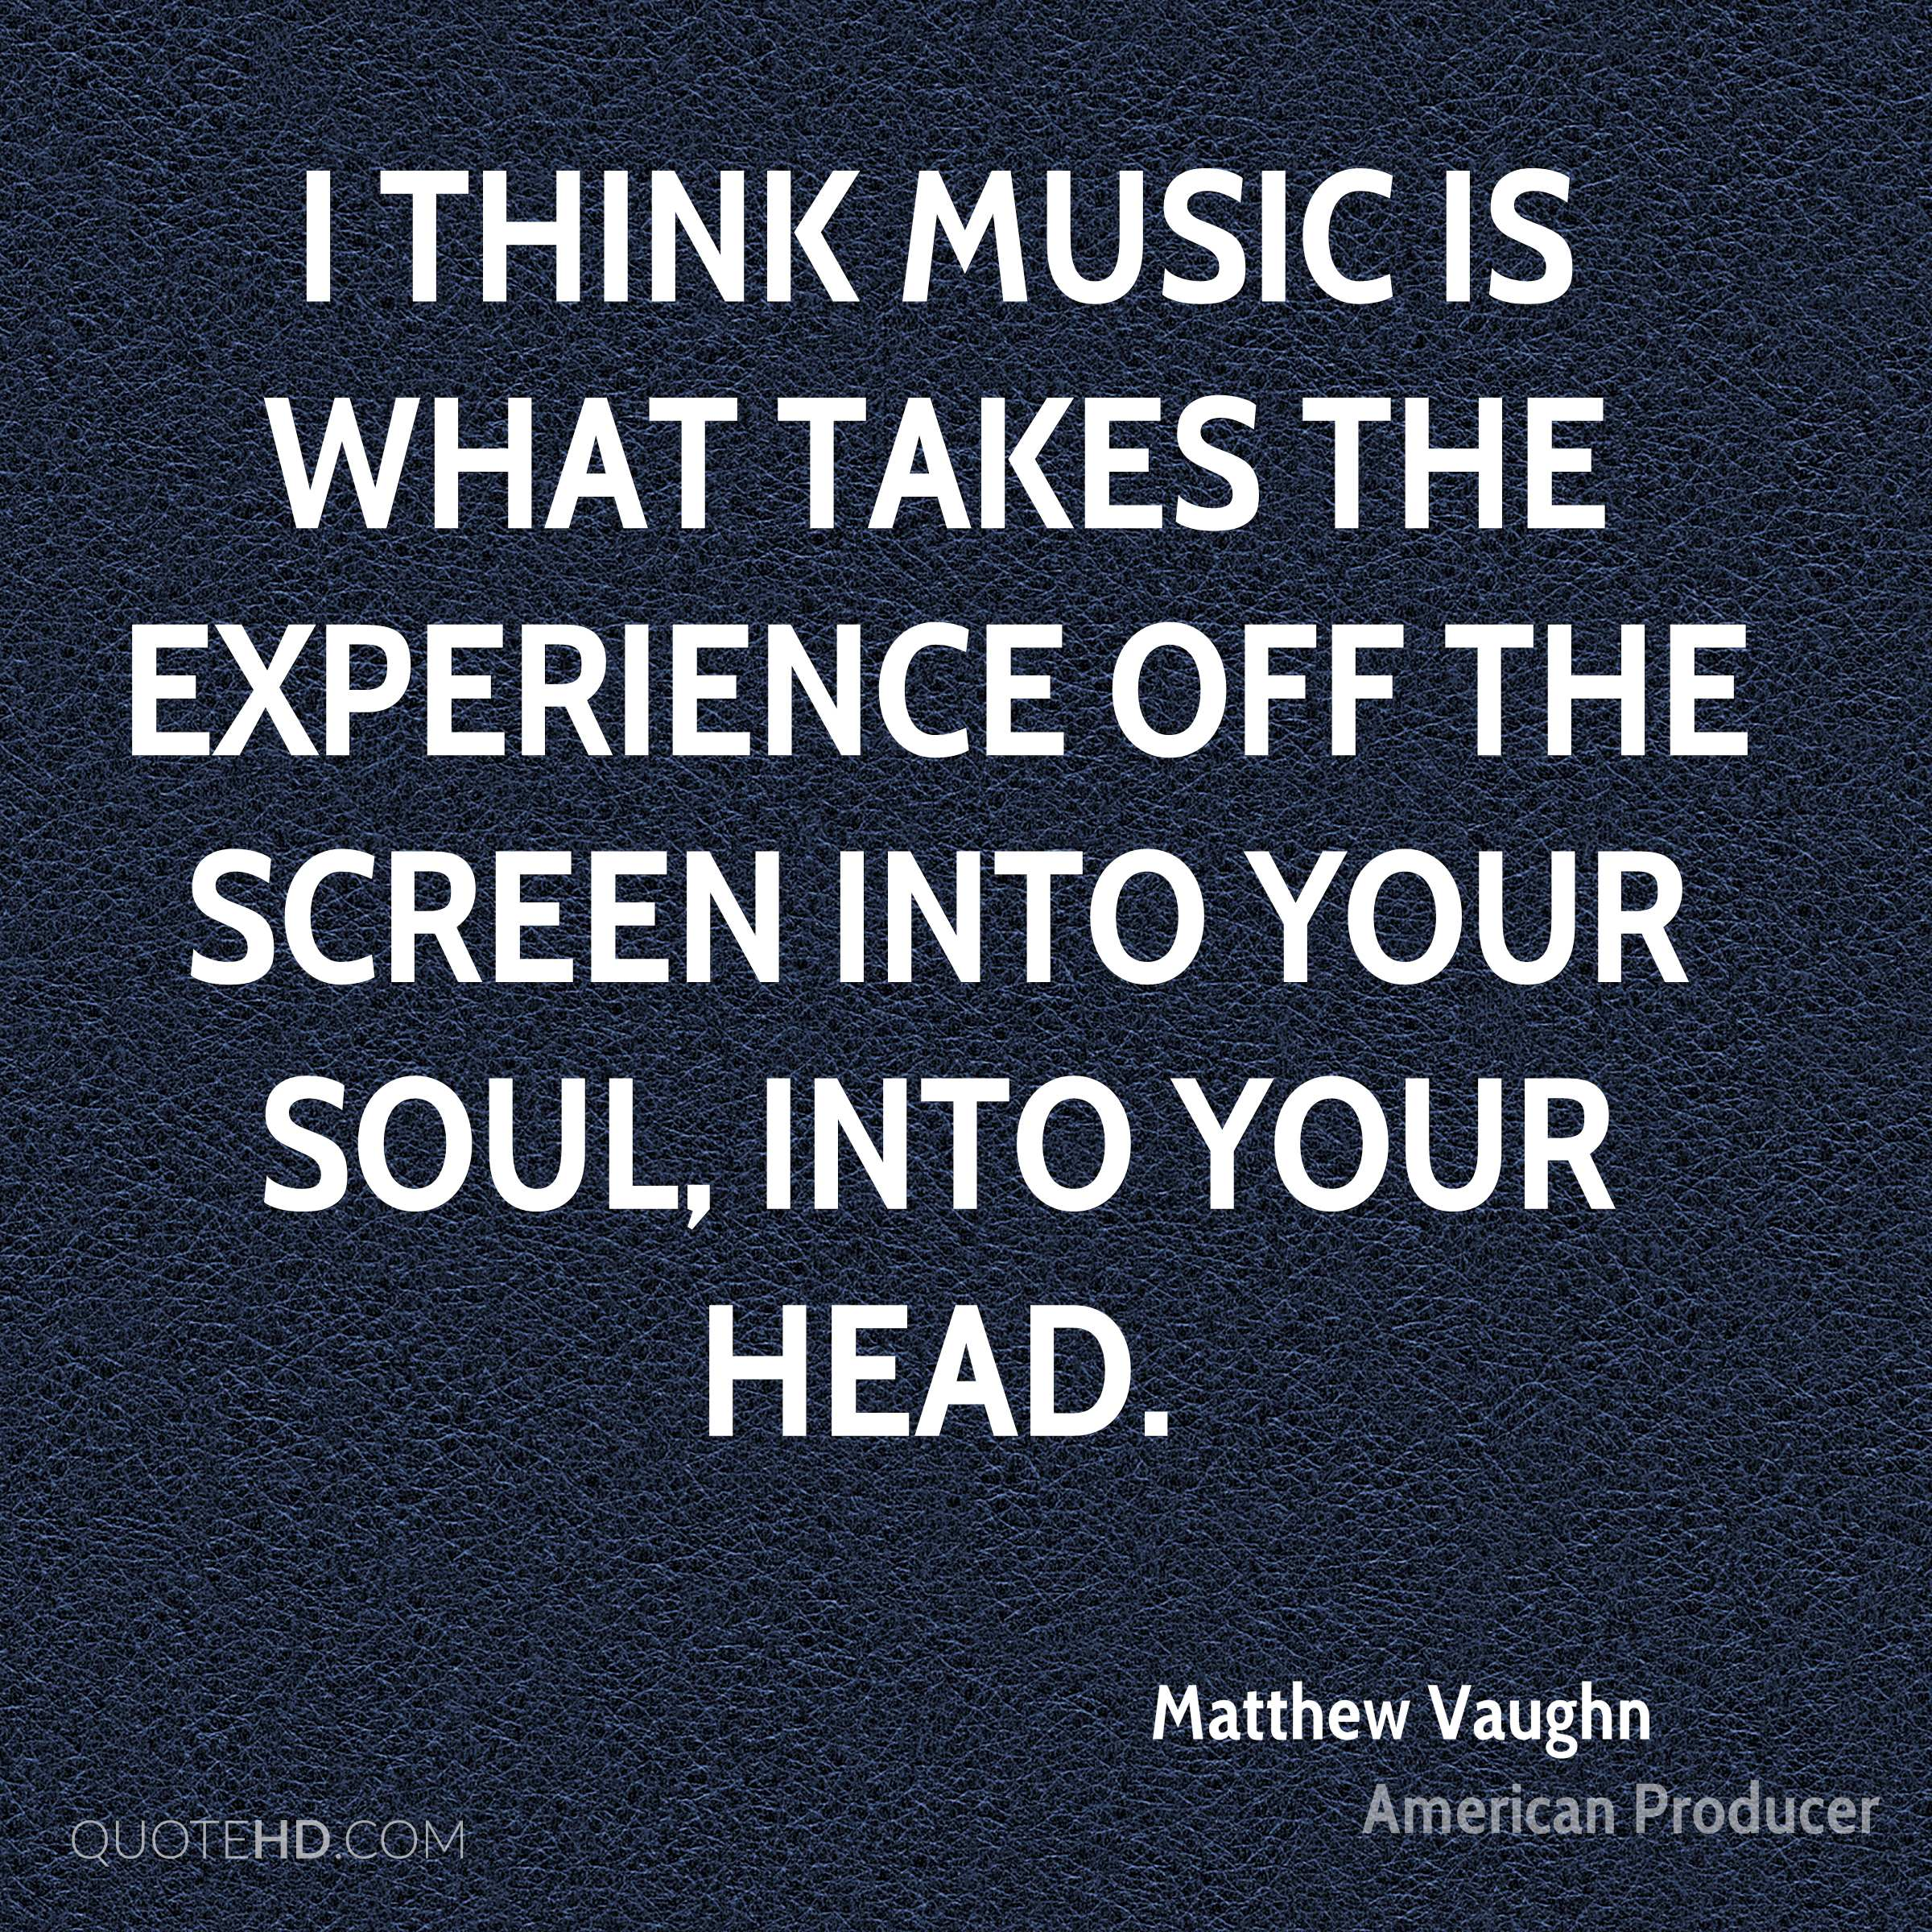 I think music is what takes the experience off the screen into your soul, into your head.